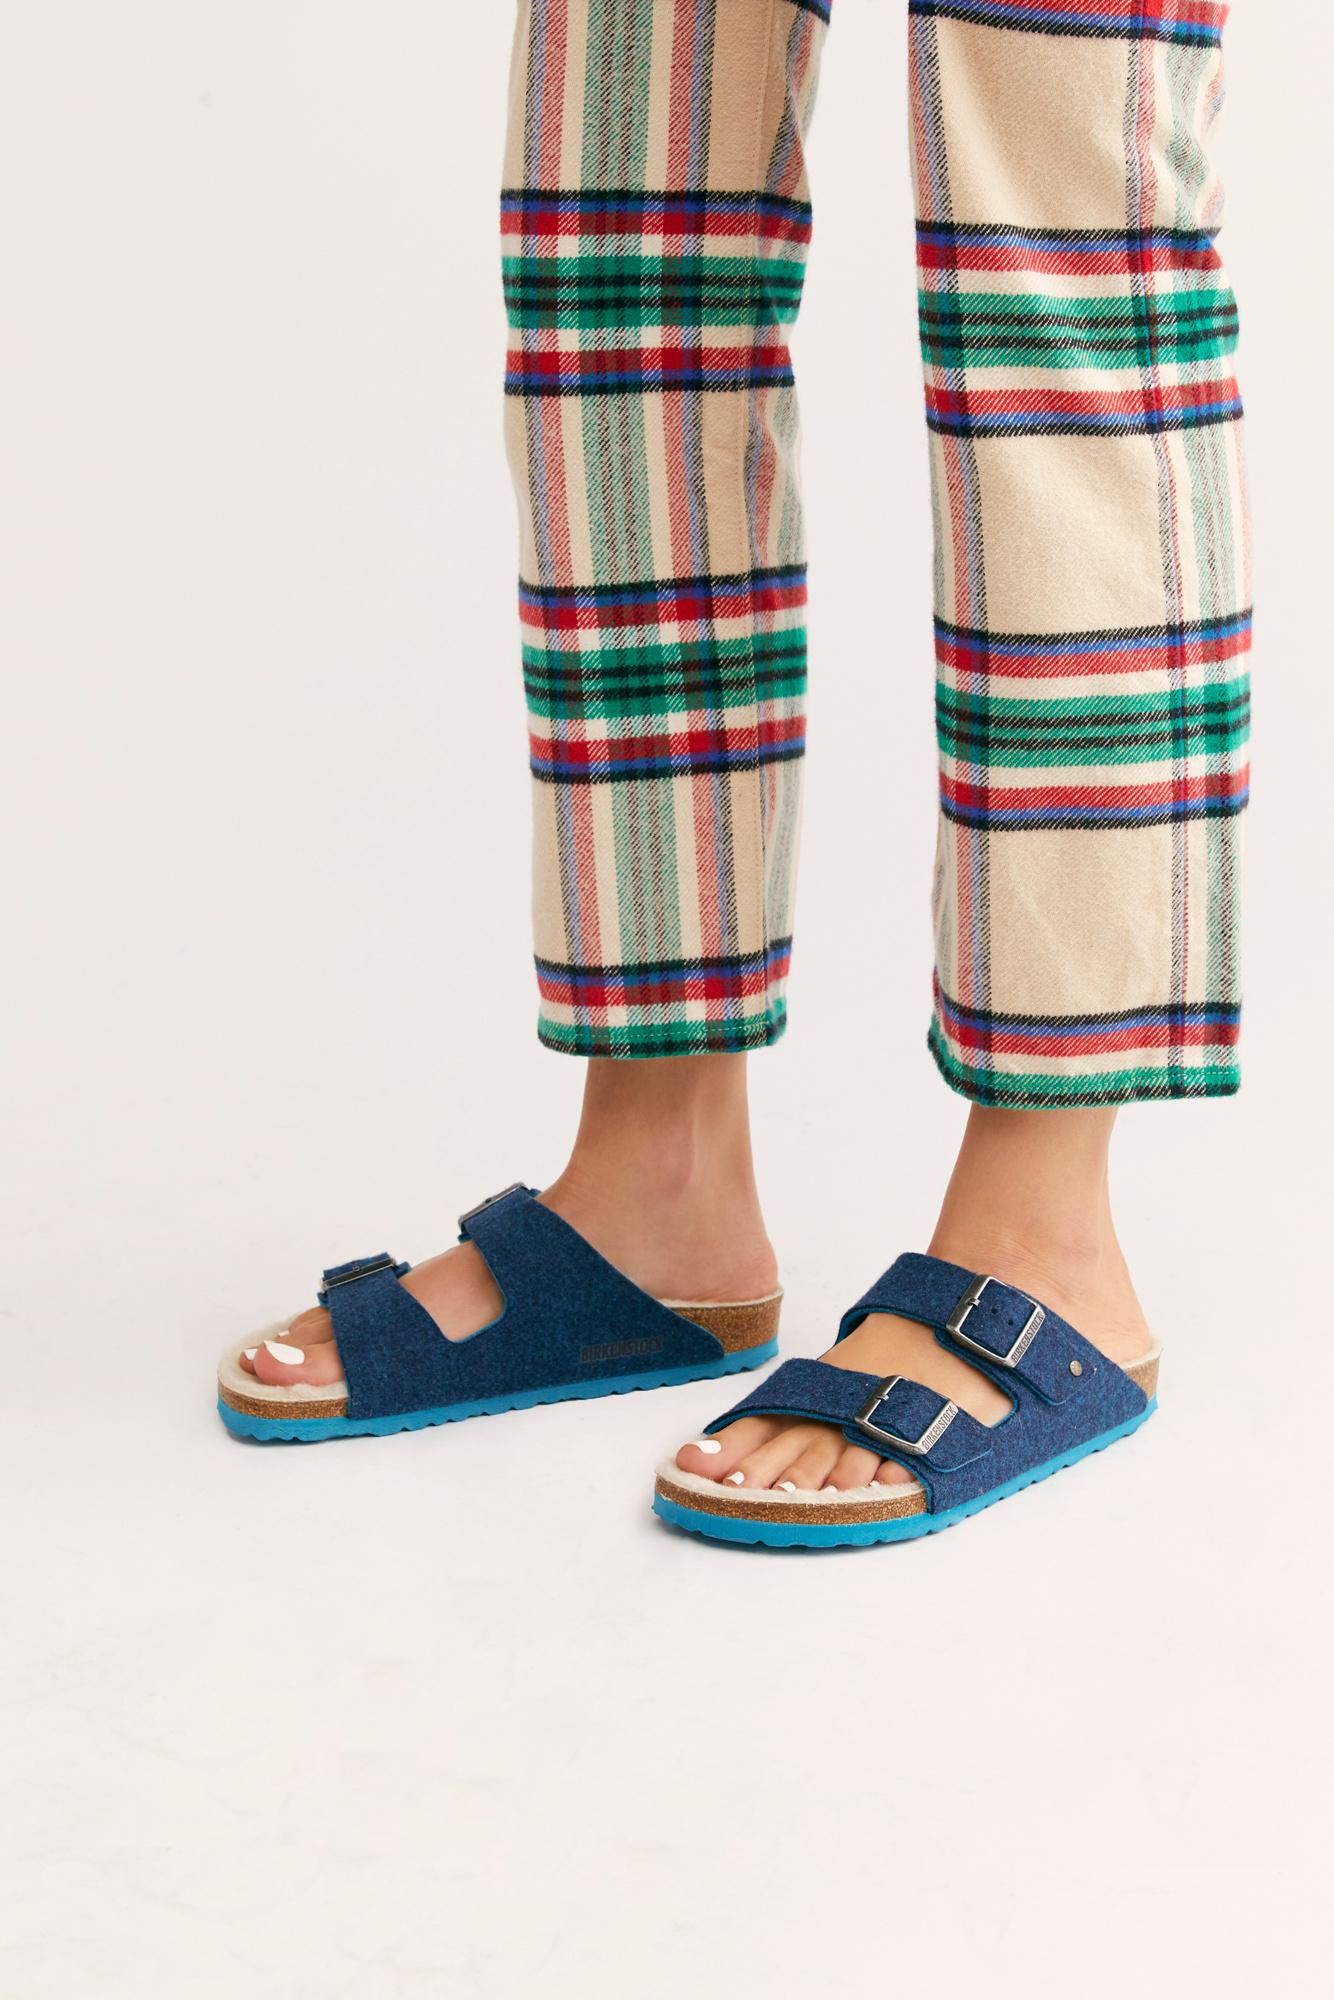 a0df8202b64a5 Lyst - Free People Arizona Happy Lamb Birkenstocks in Blue